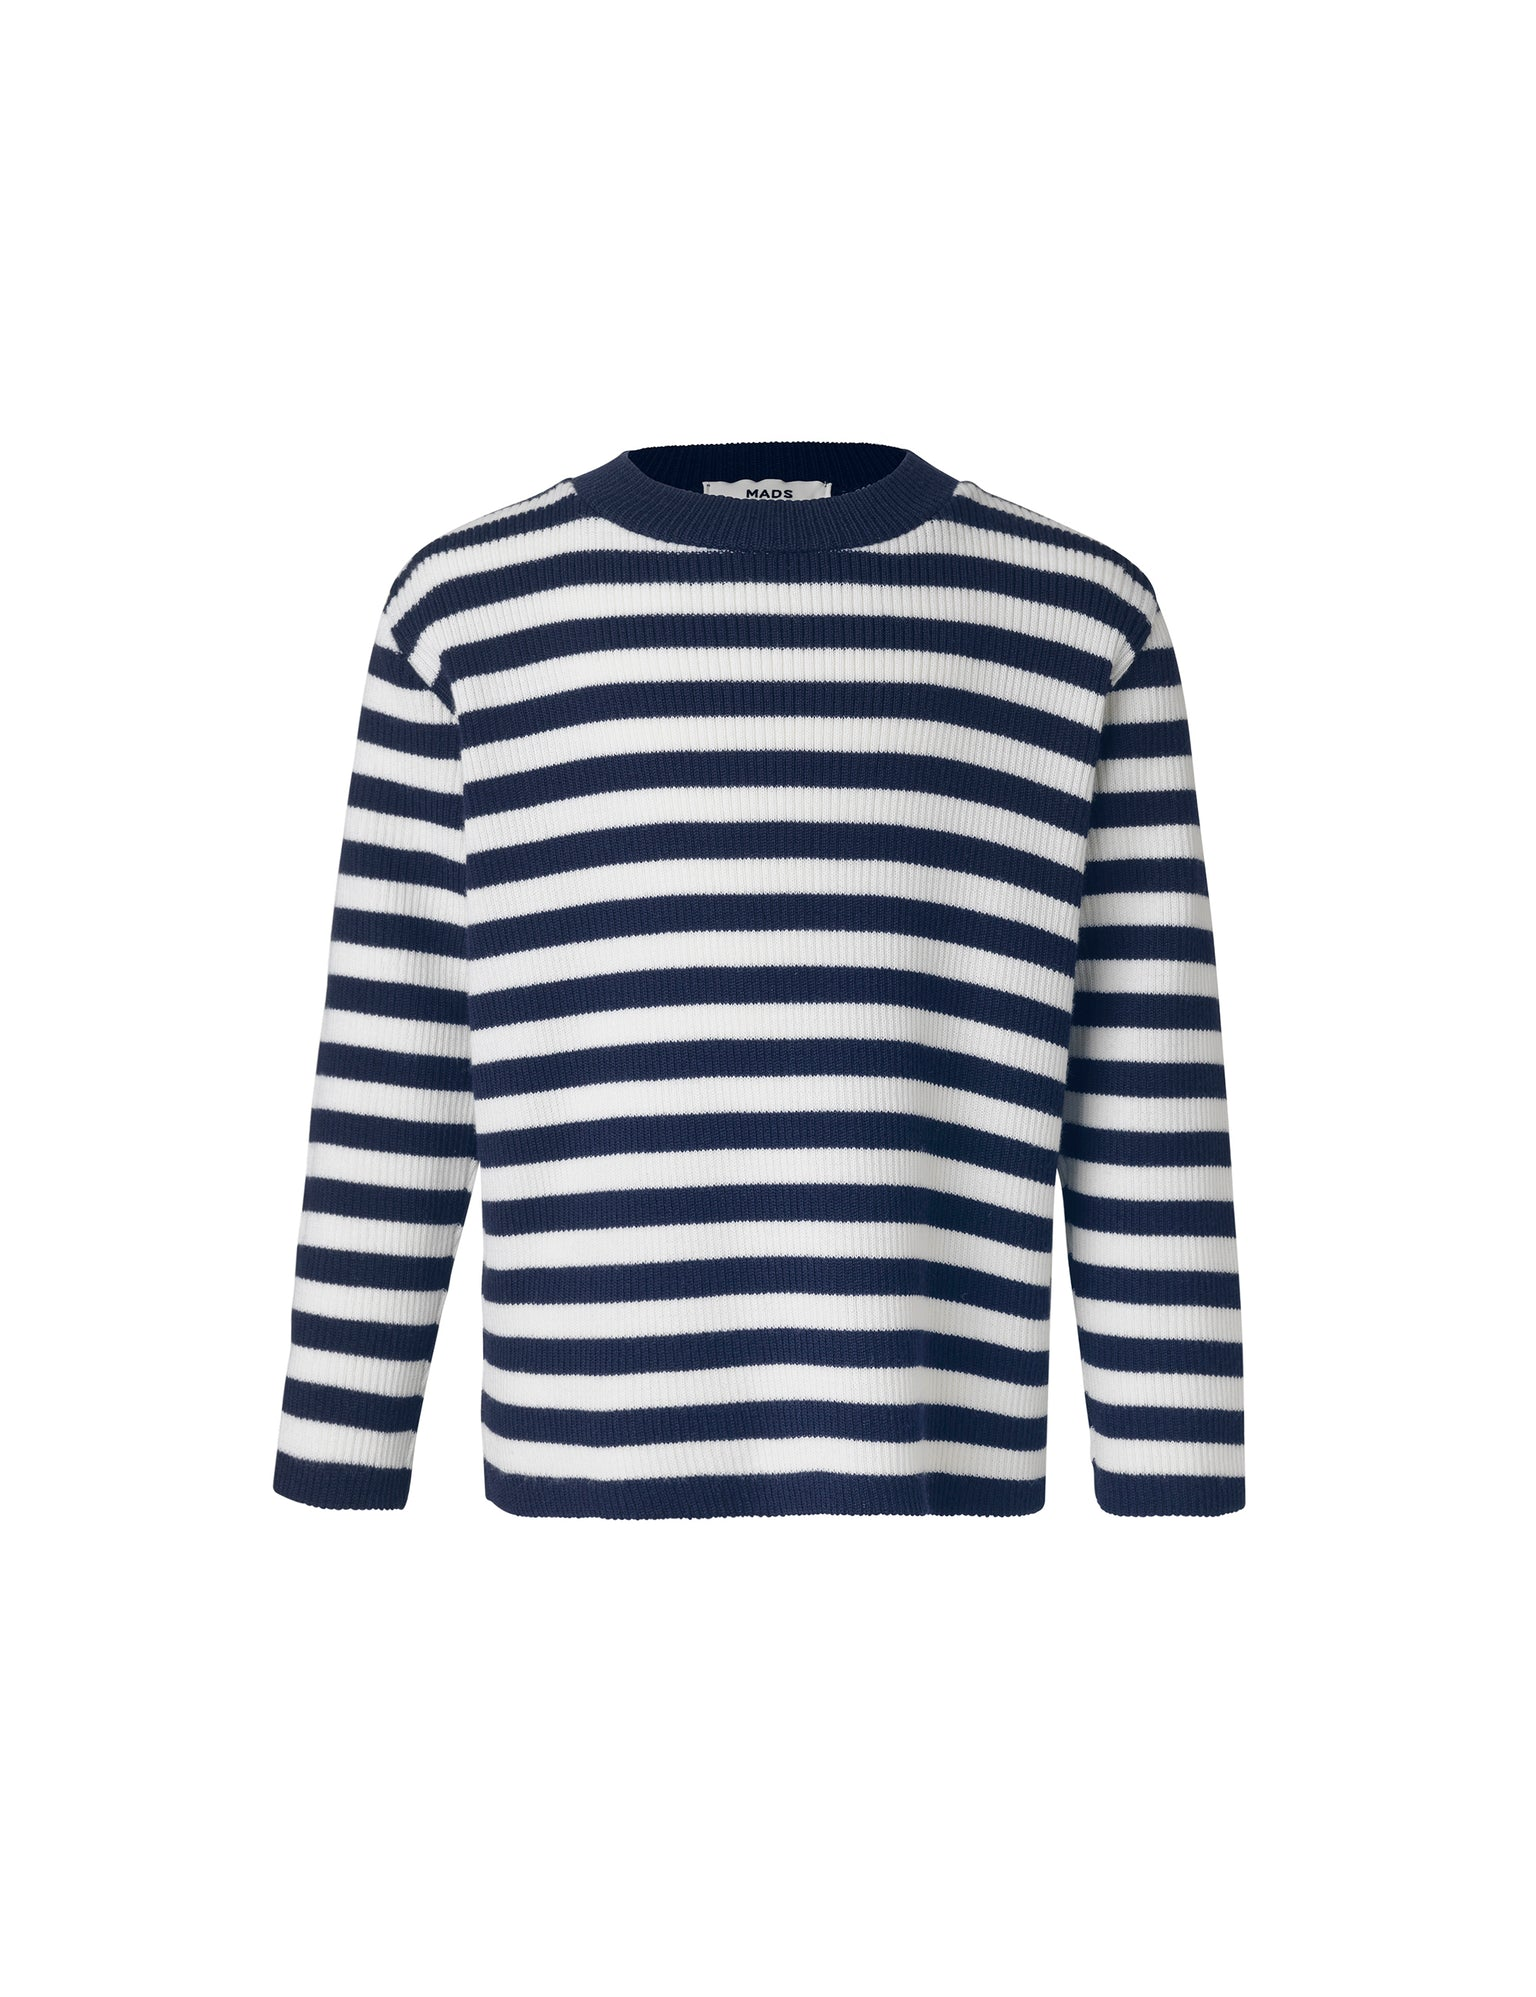 Wool Tender Kaptina, Navy/Ecru